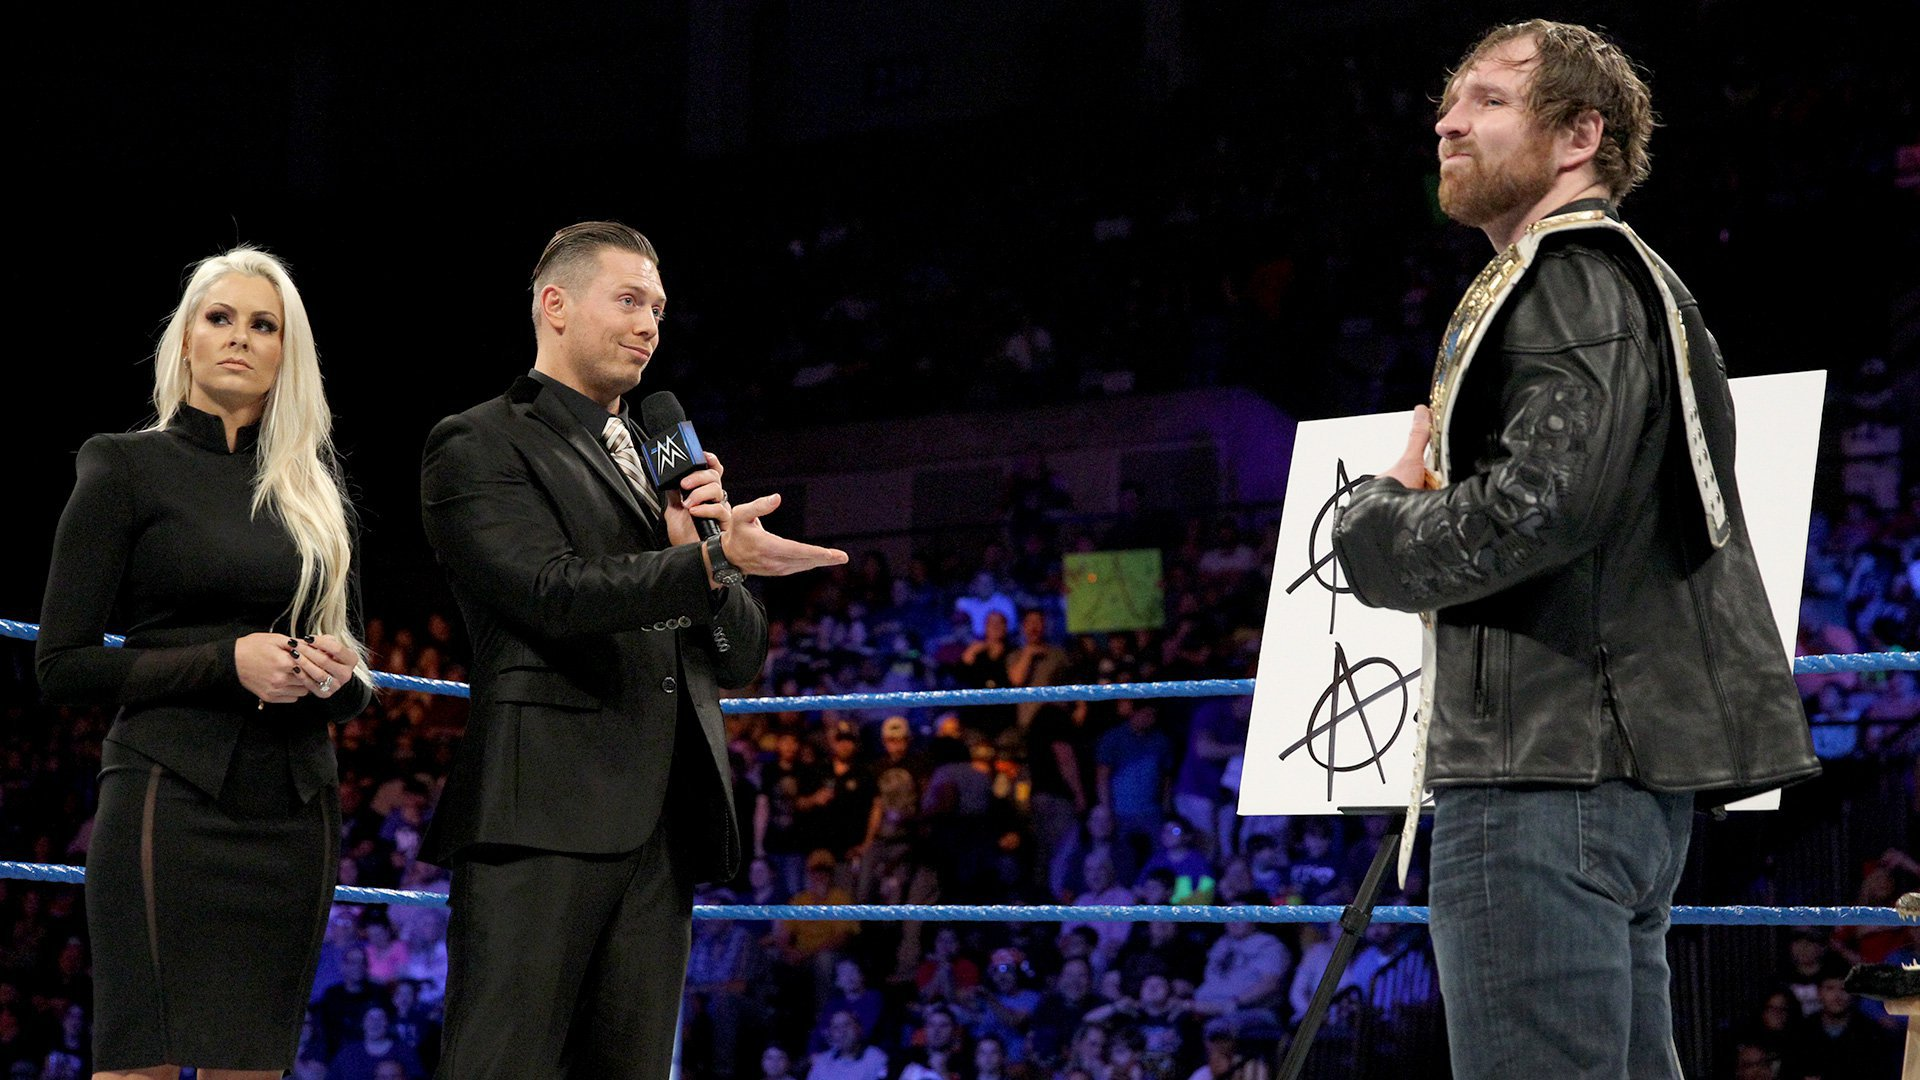 The Miz tells Ambrose to hand over the Intercontinental Championship because it's the right thing to do, since it was decided in controversial fashion the previous week.